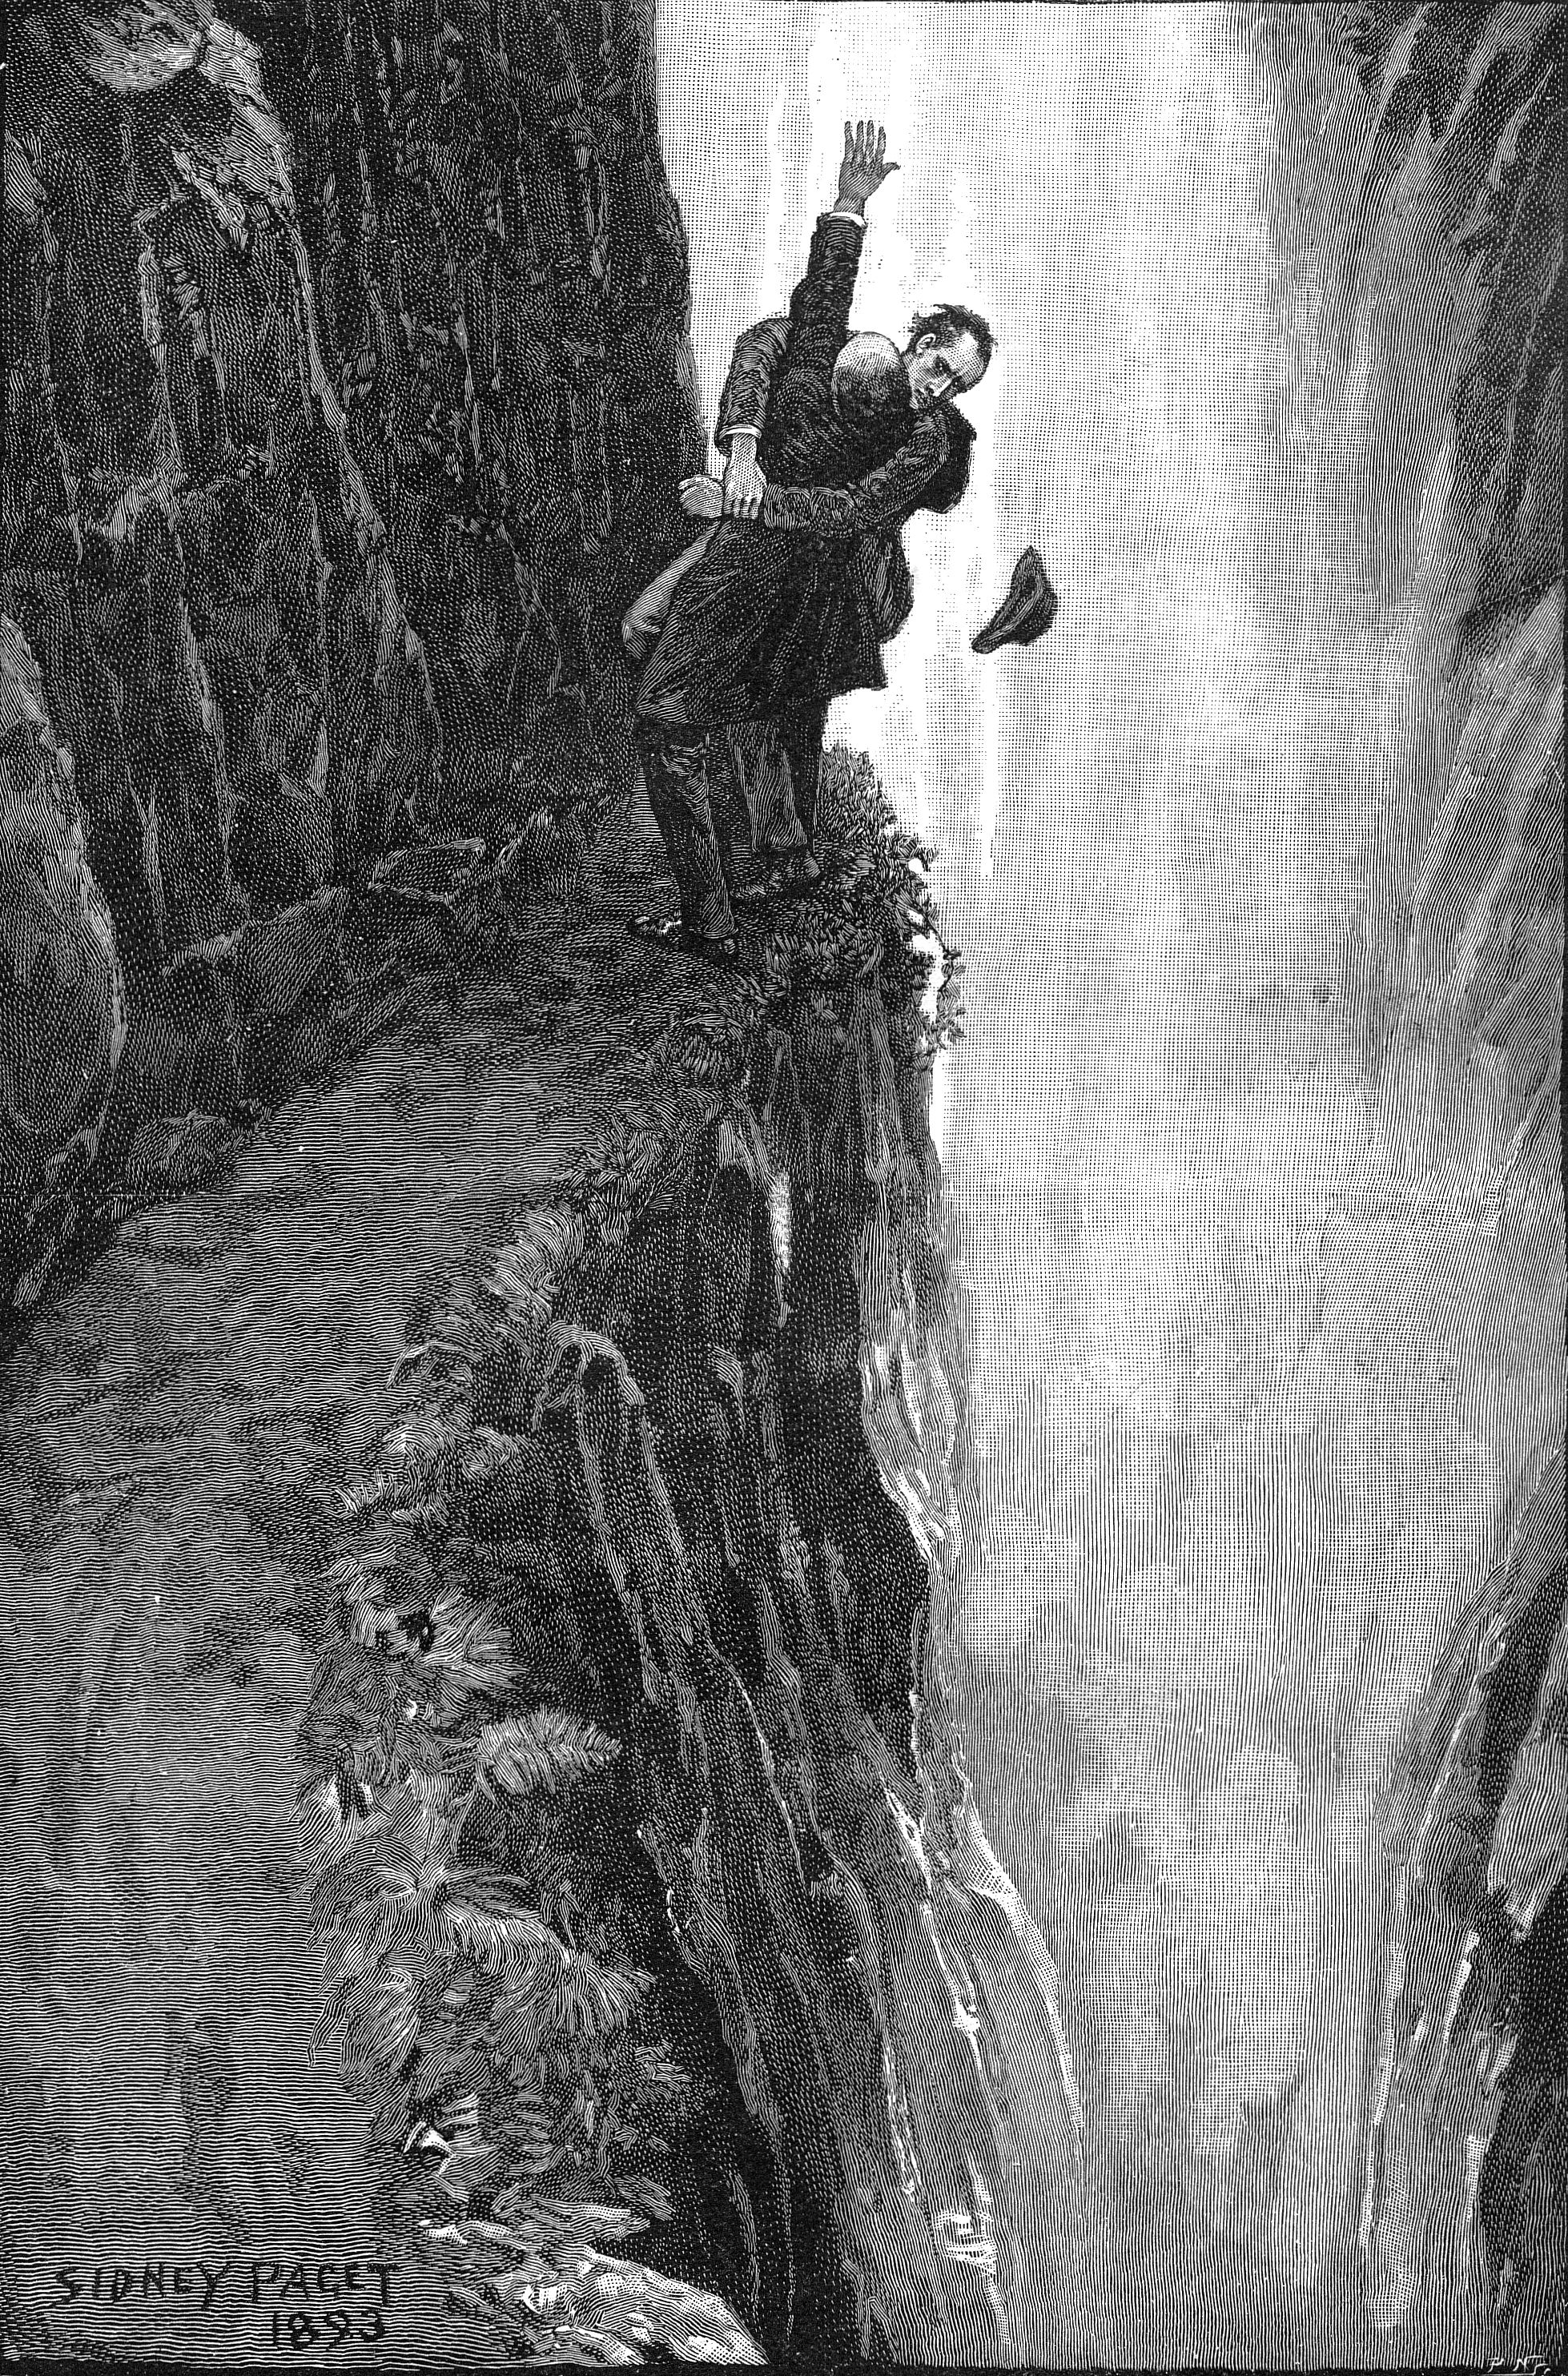 Sidney Paget, Holmes and Moriarty wrestle at Reichenbach Falls